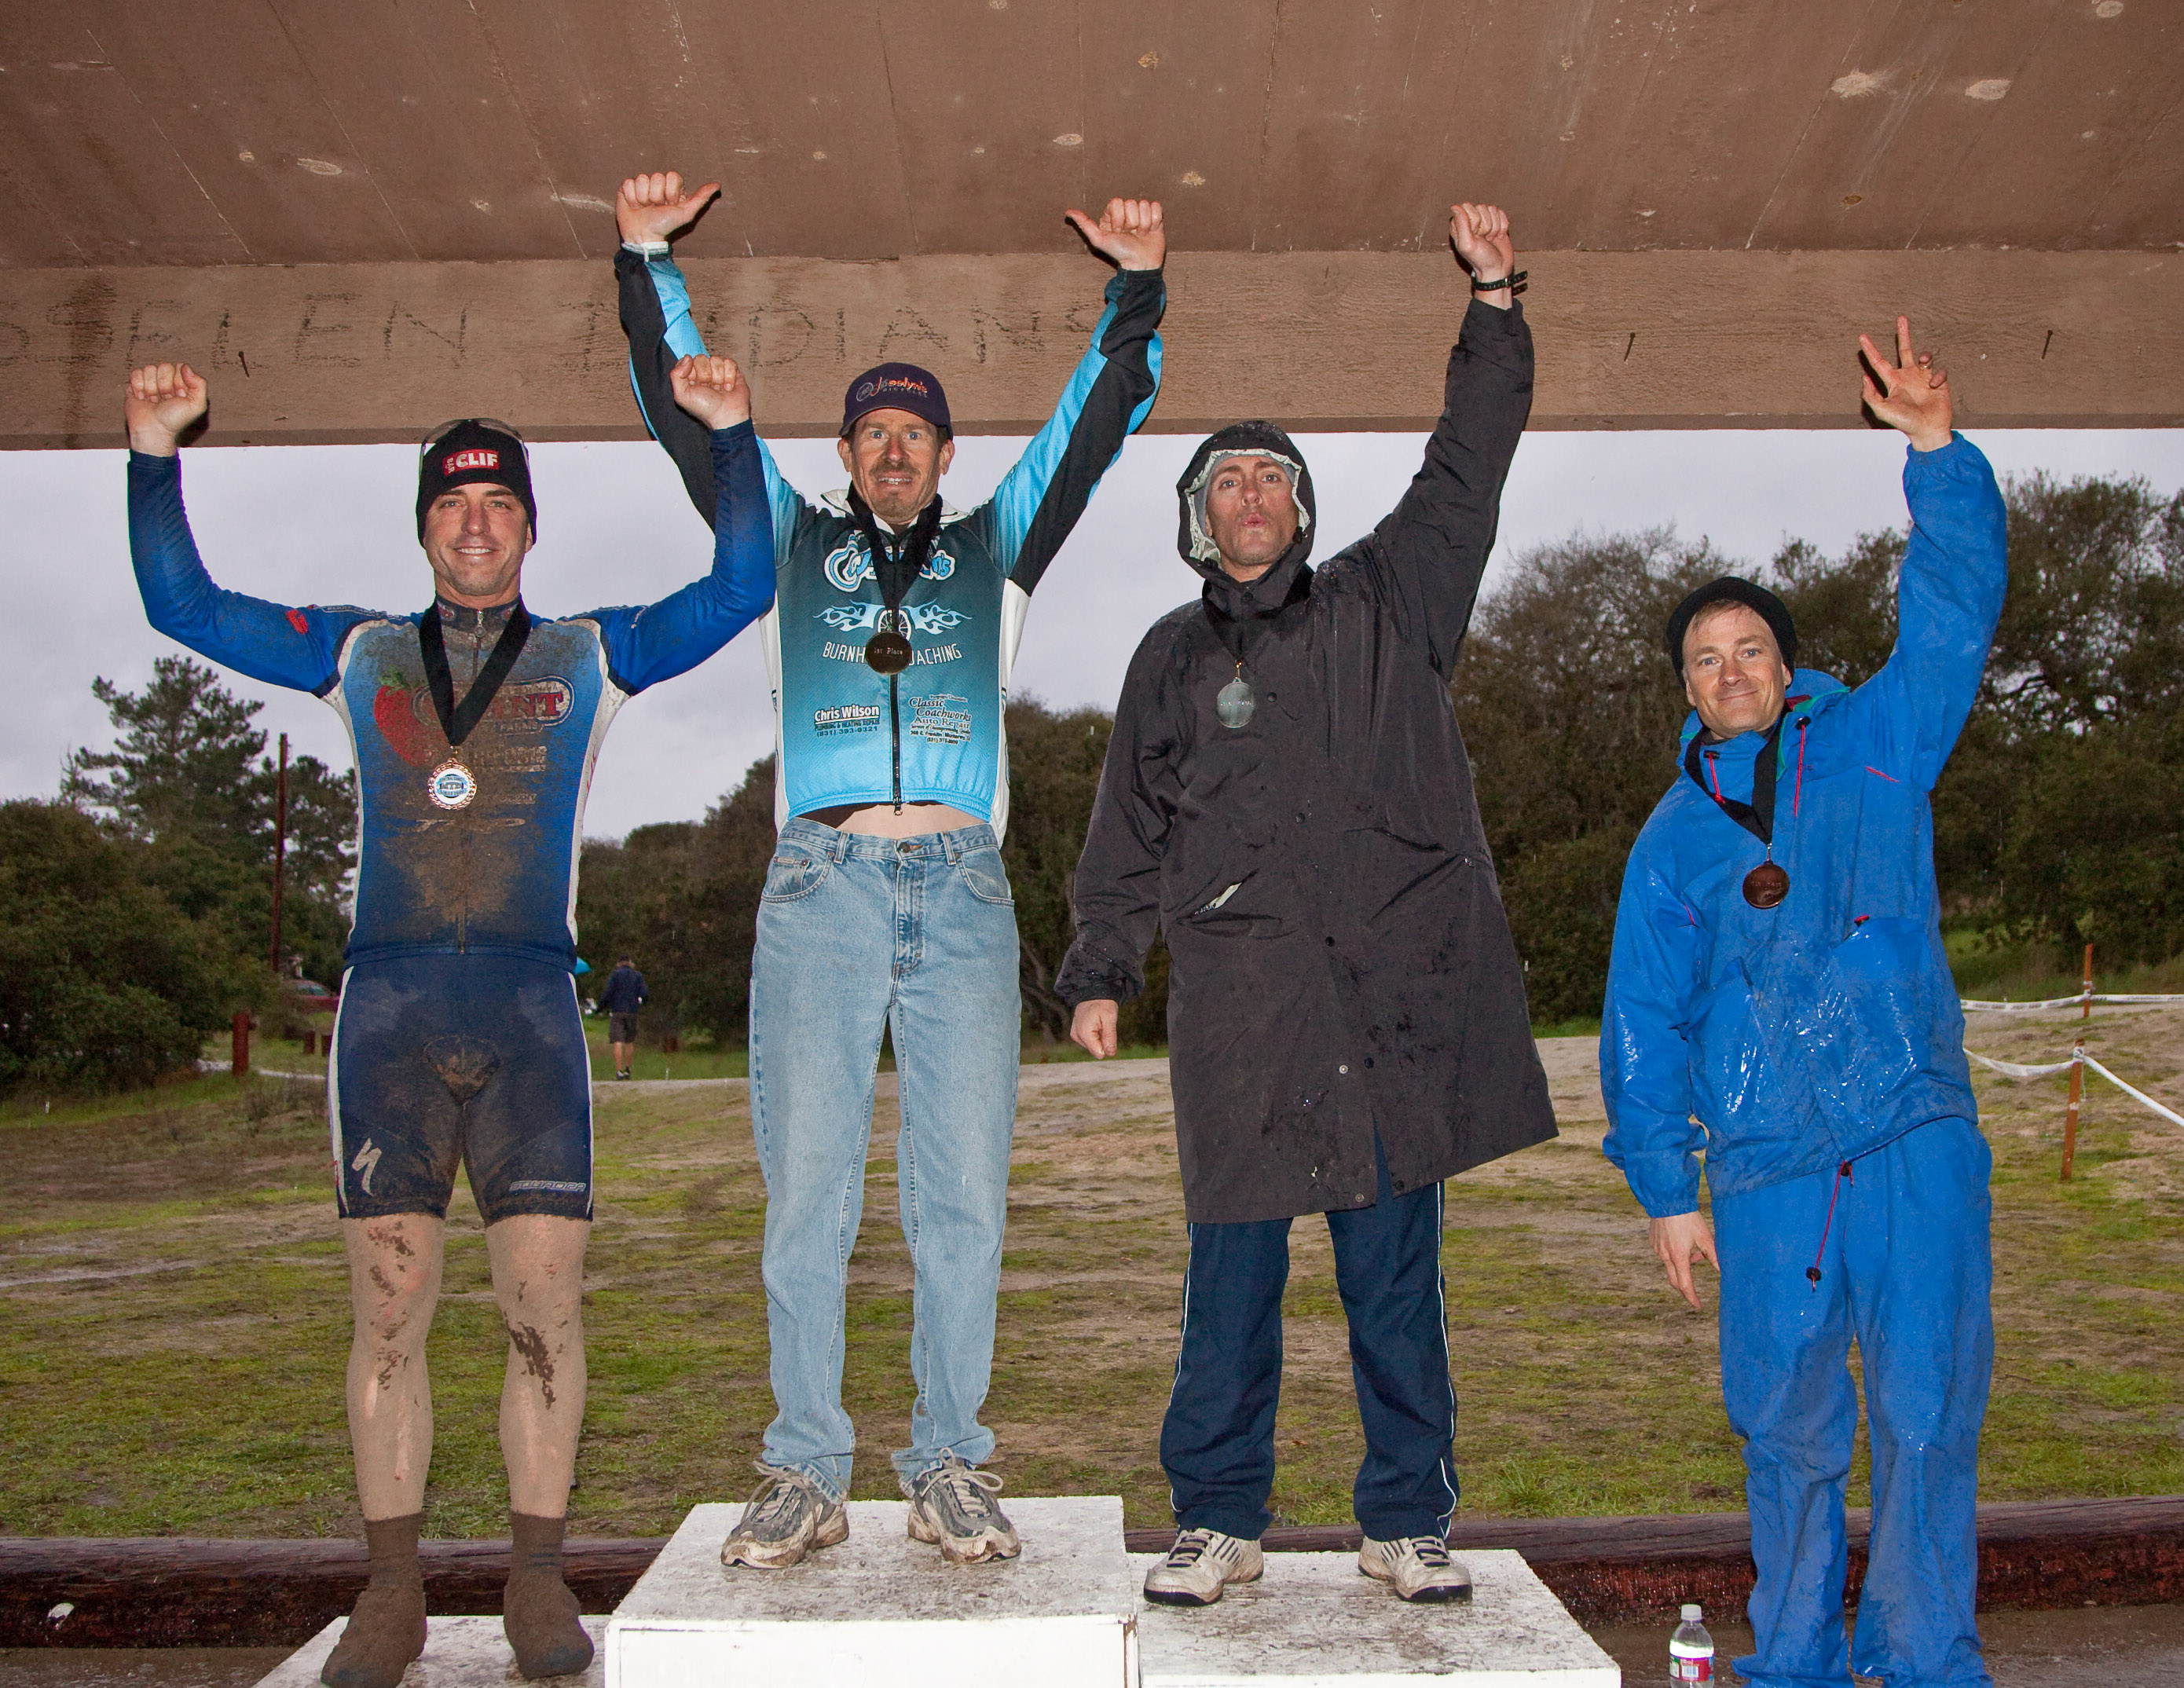 Principal O'Brien Nabs a Podium in the CCCX MTB Cross Country